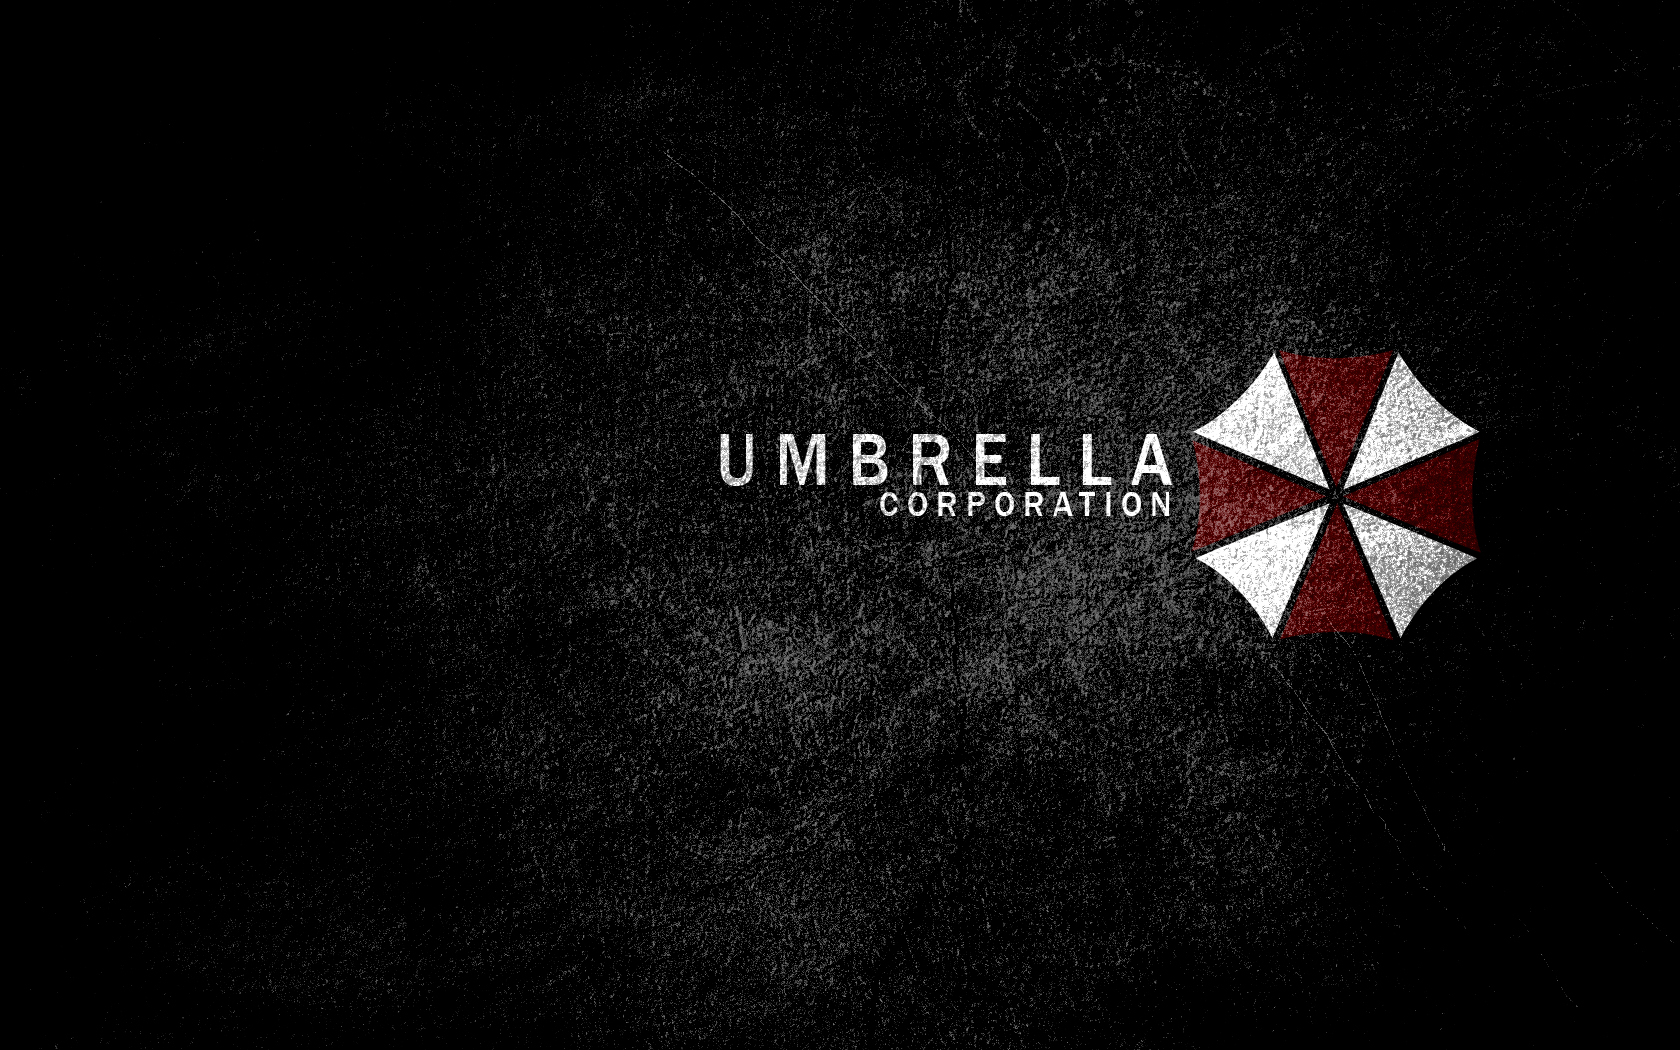 Umbrella corporation wallpaper background wallpapersafari - Umbrella corporation wallpaper hd 1366x768 ...